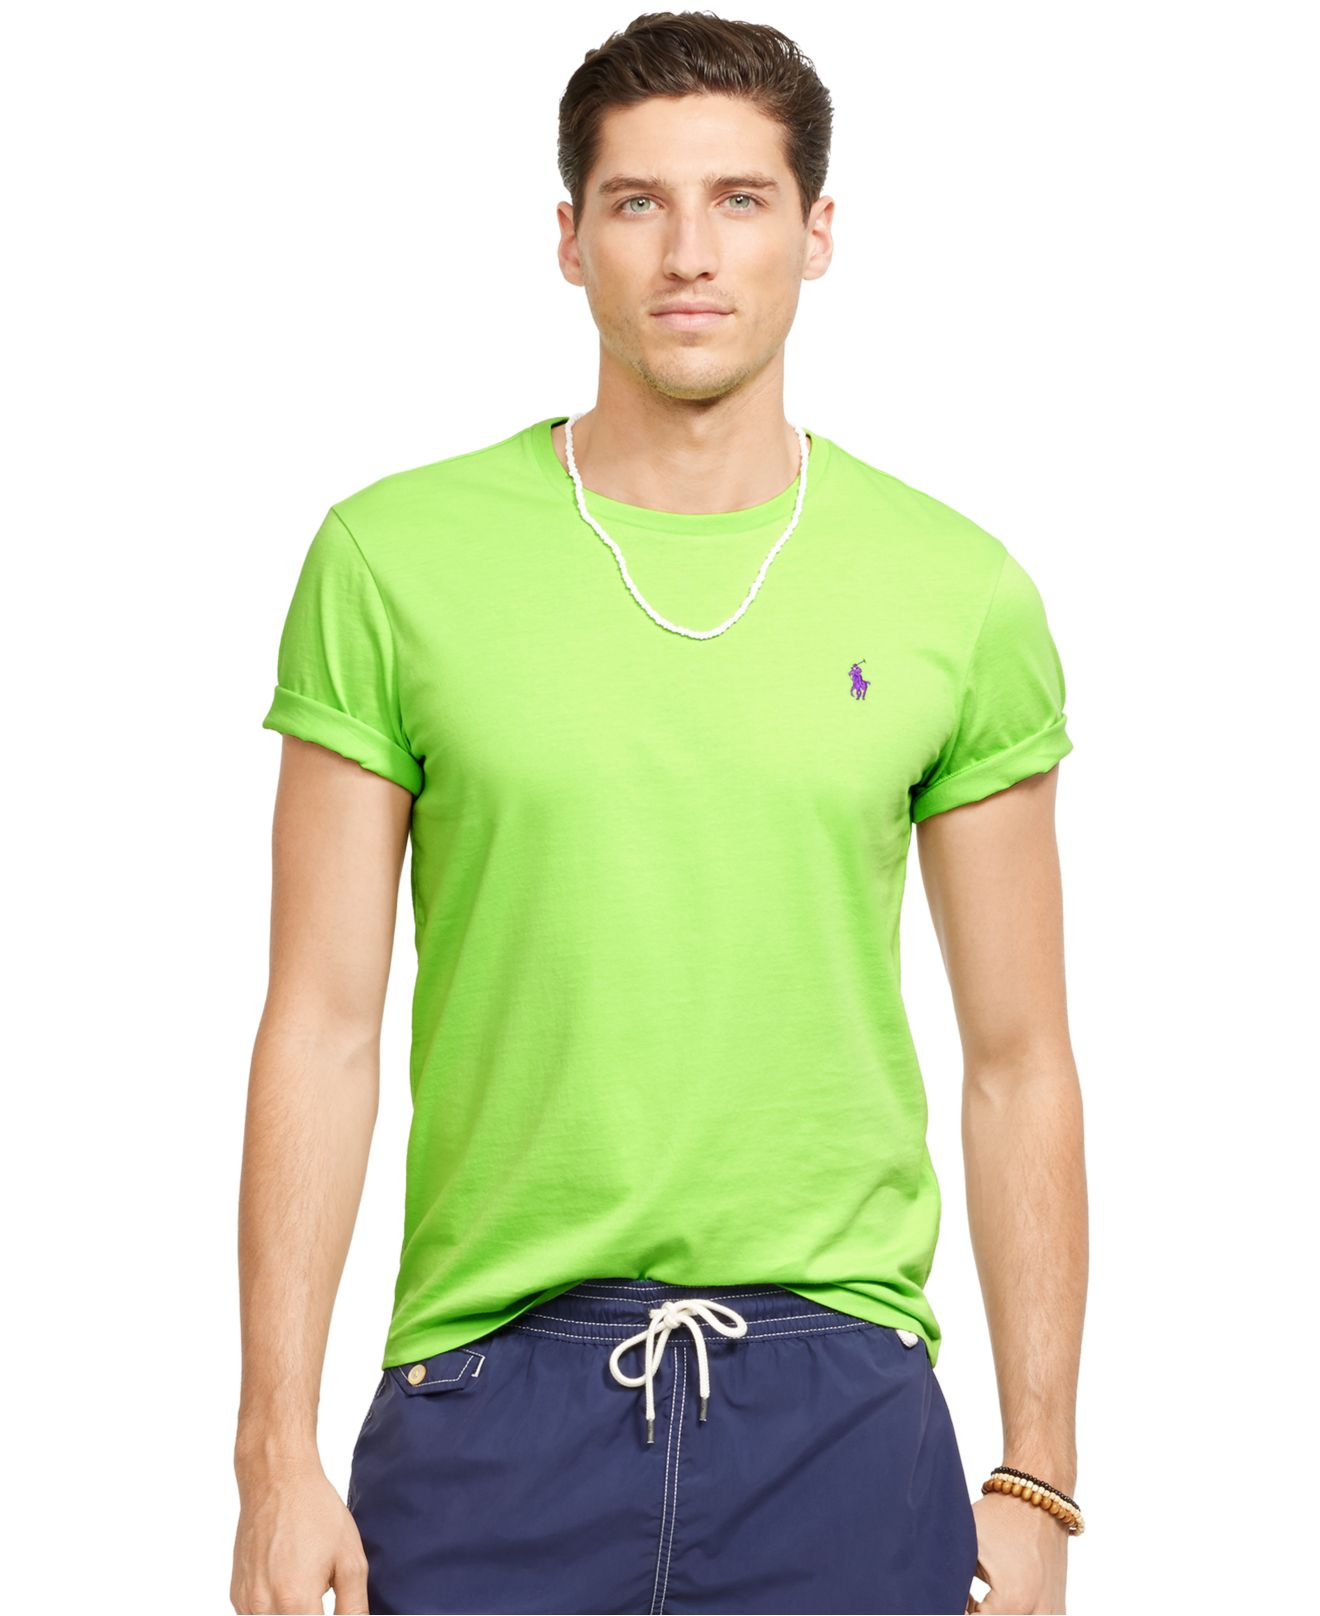 Polo ralph lauren custom fit jersey t shirt in green for for Custom fit t shirts